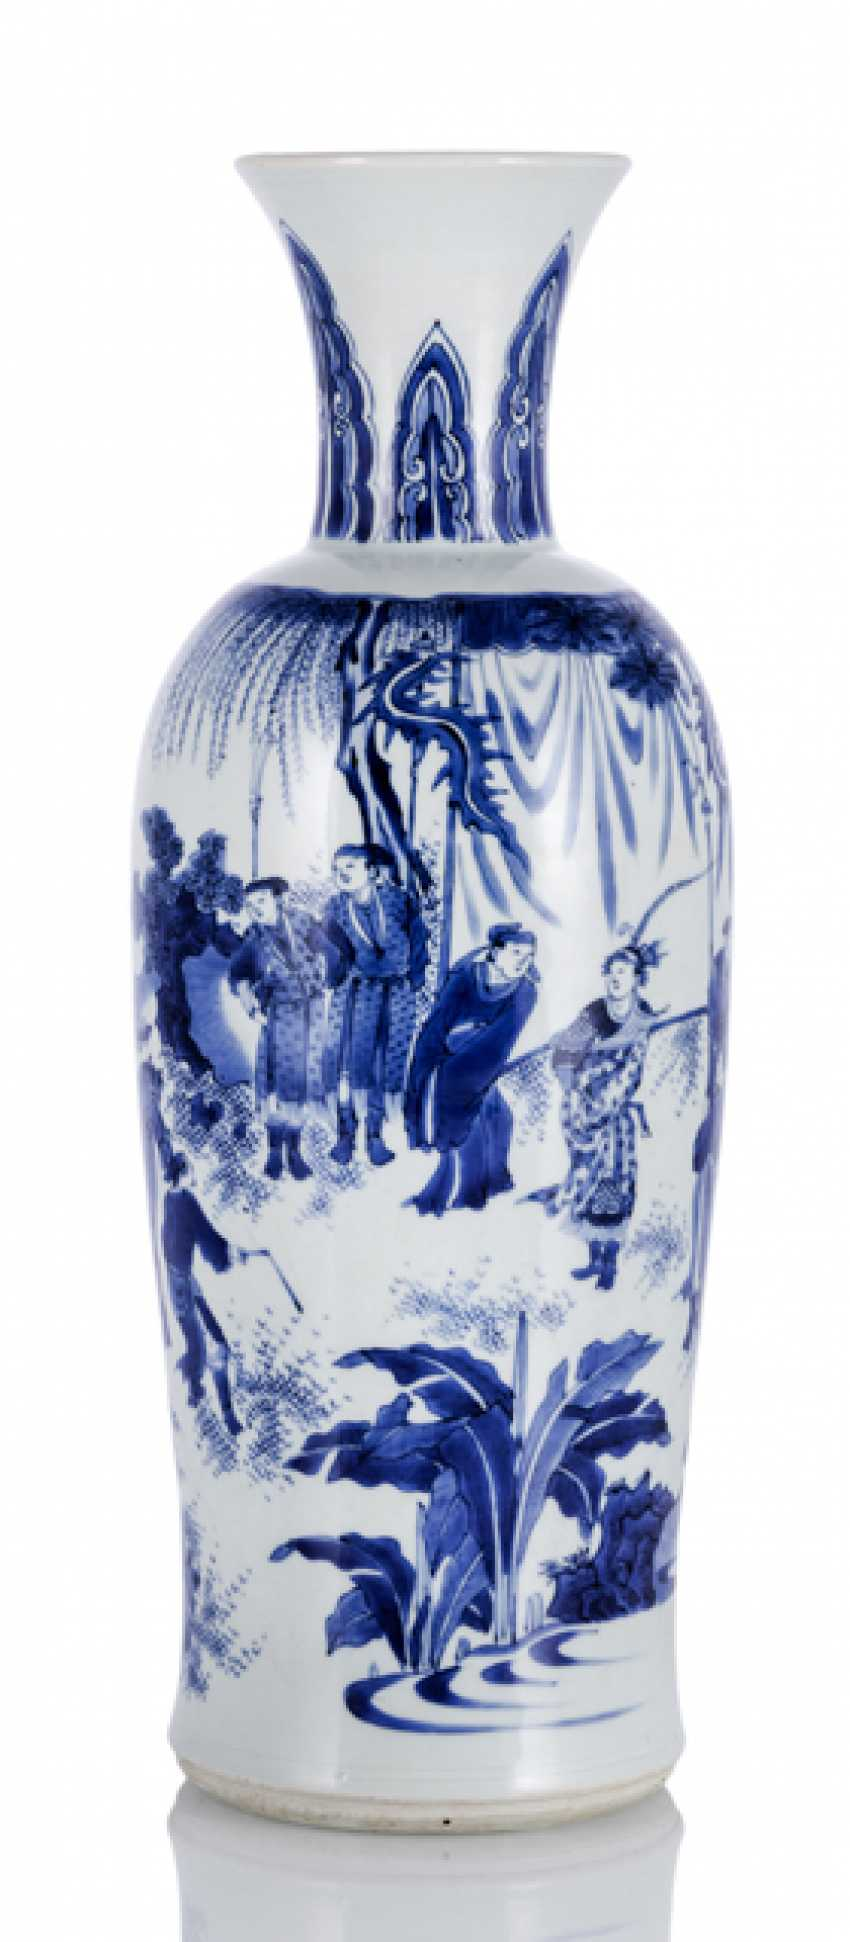 'Rolwagen'Vase with blue-and-white decorated a romantic scene - photo 1